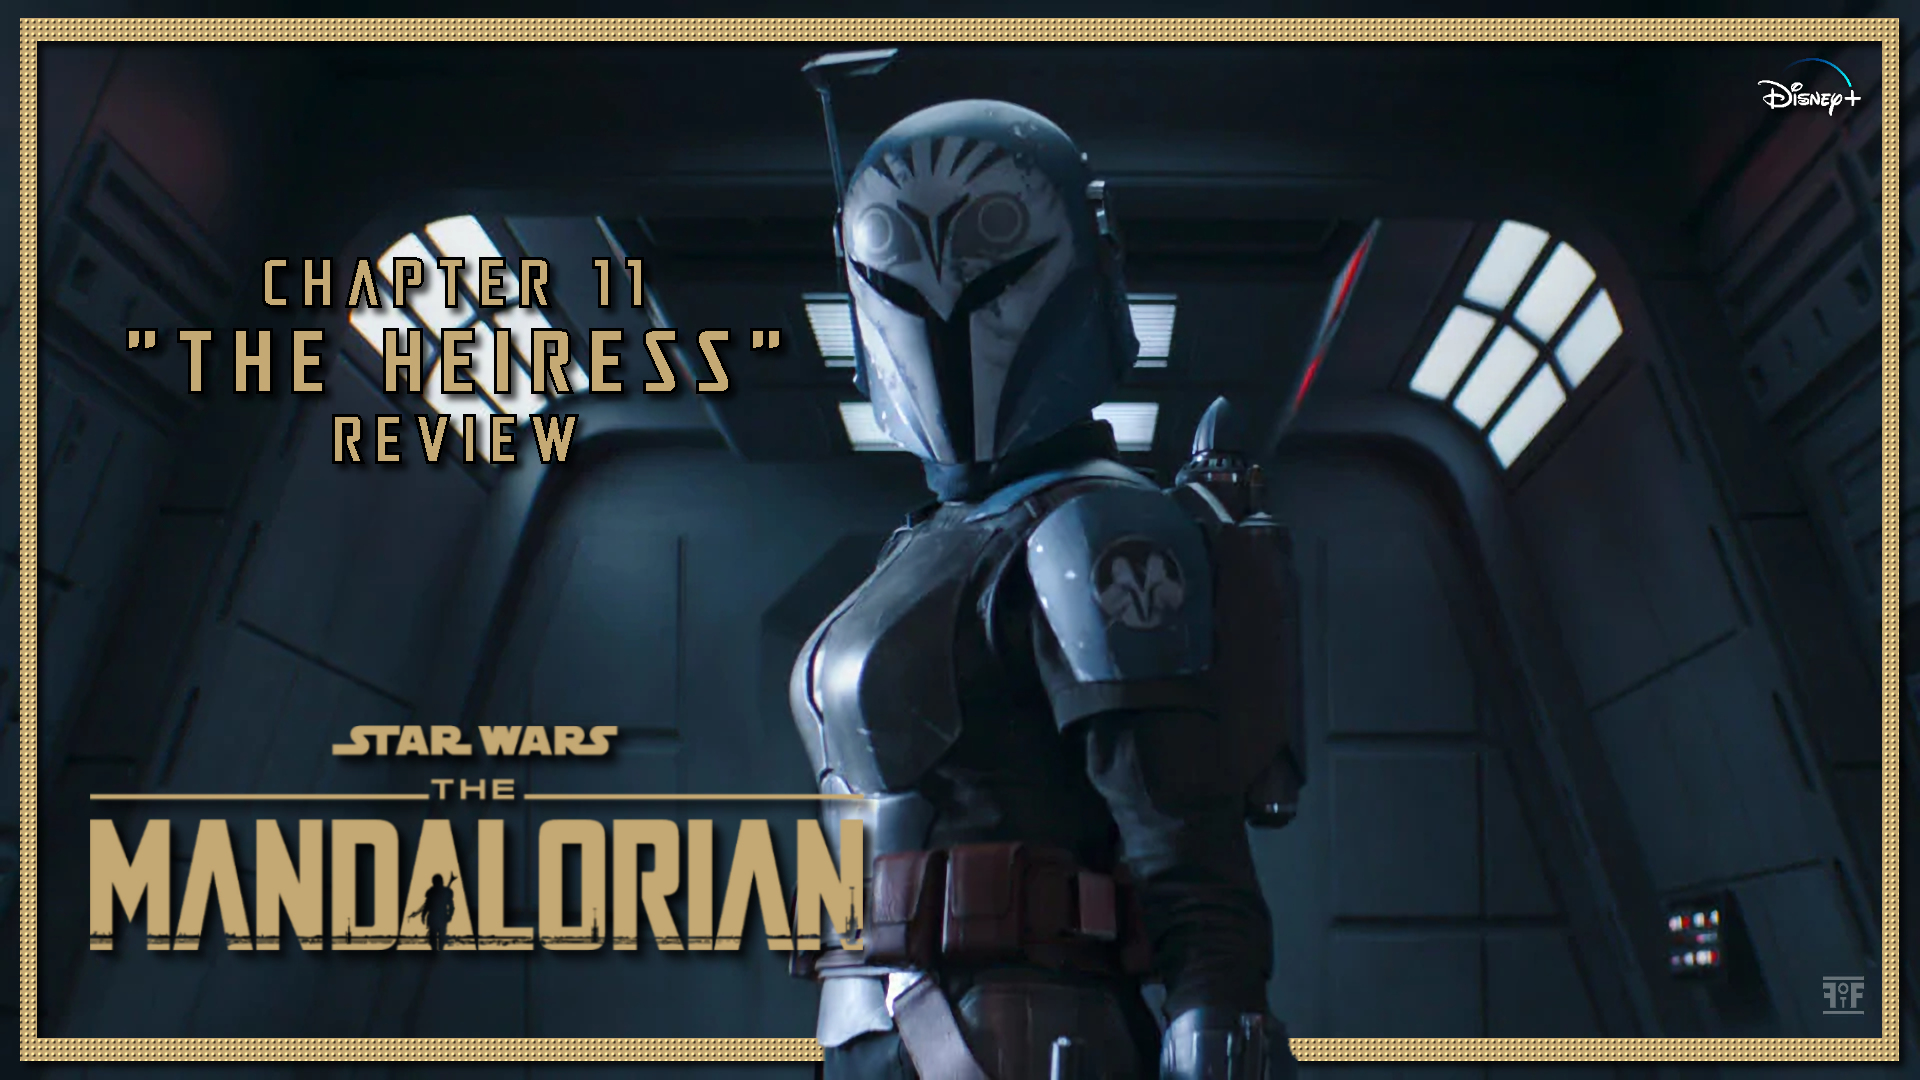 The Mandalorian Chapter 11 The Heiress Review